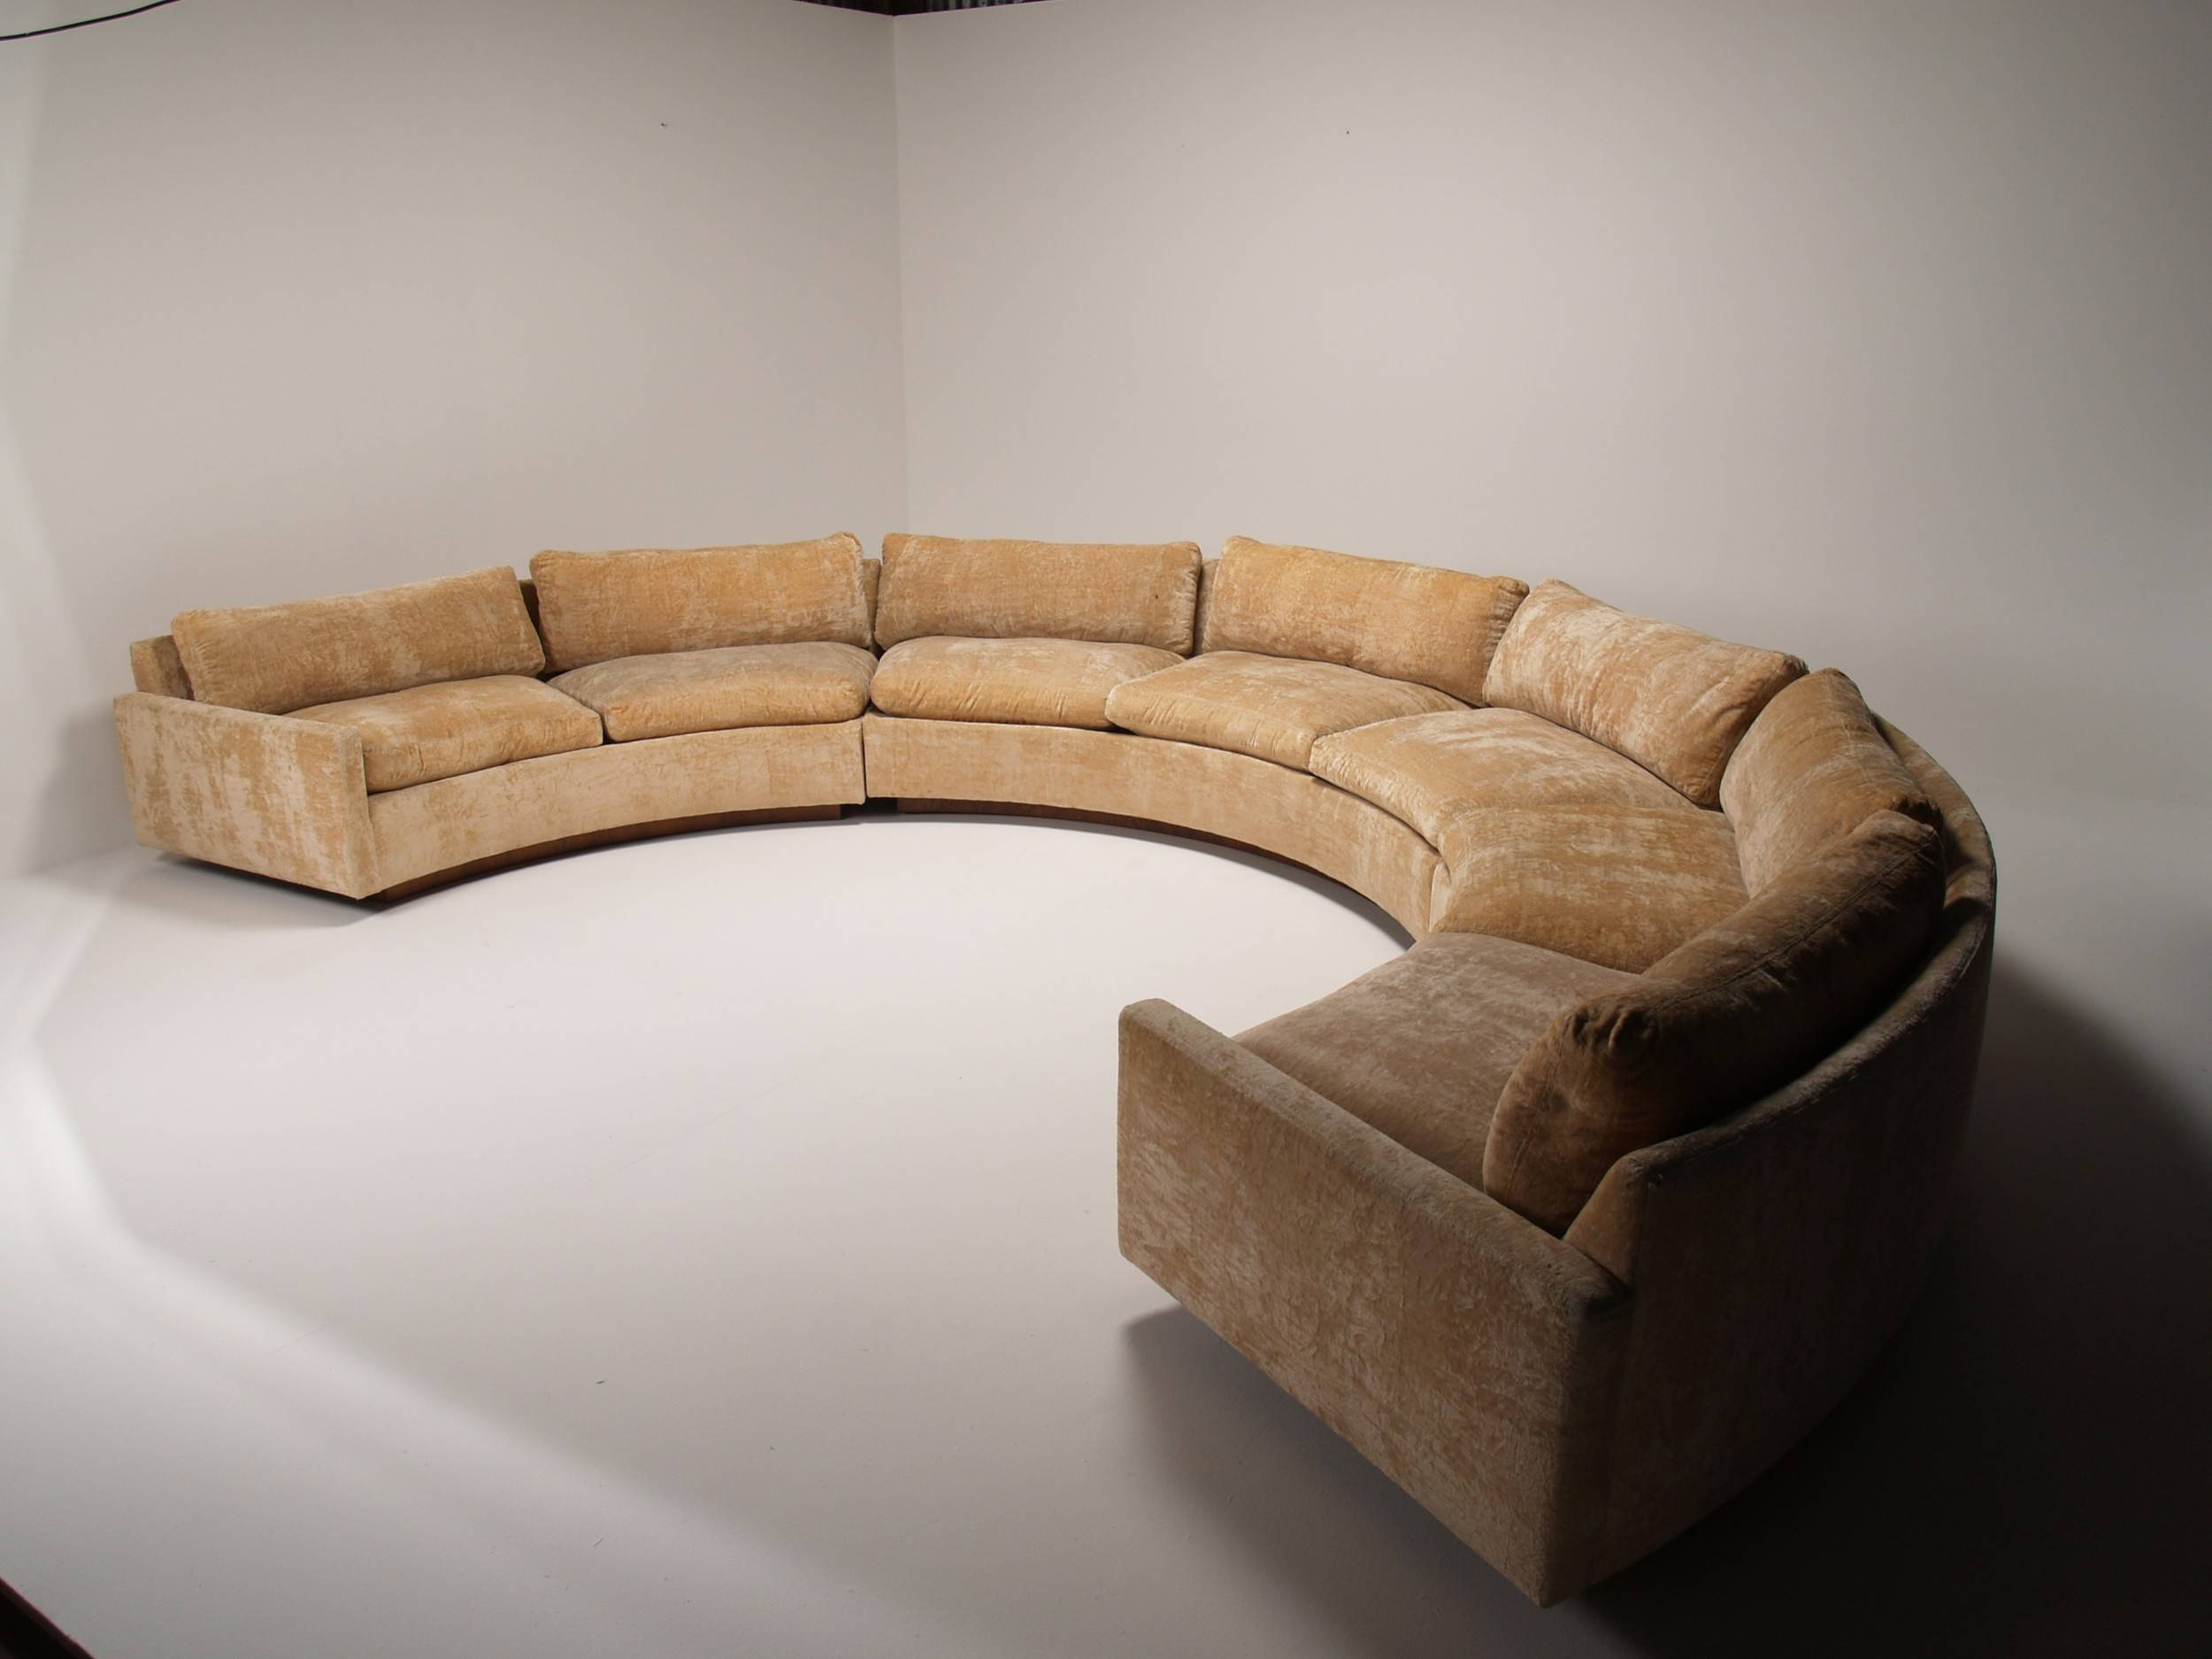 Cool Sofas For Sale | Tehranmix Decoration with regard to Cool Cheap Sofas (Image 8 of 30)